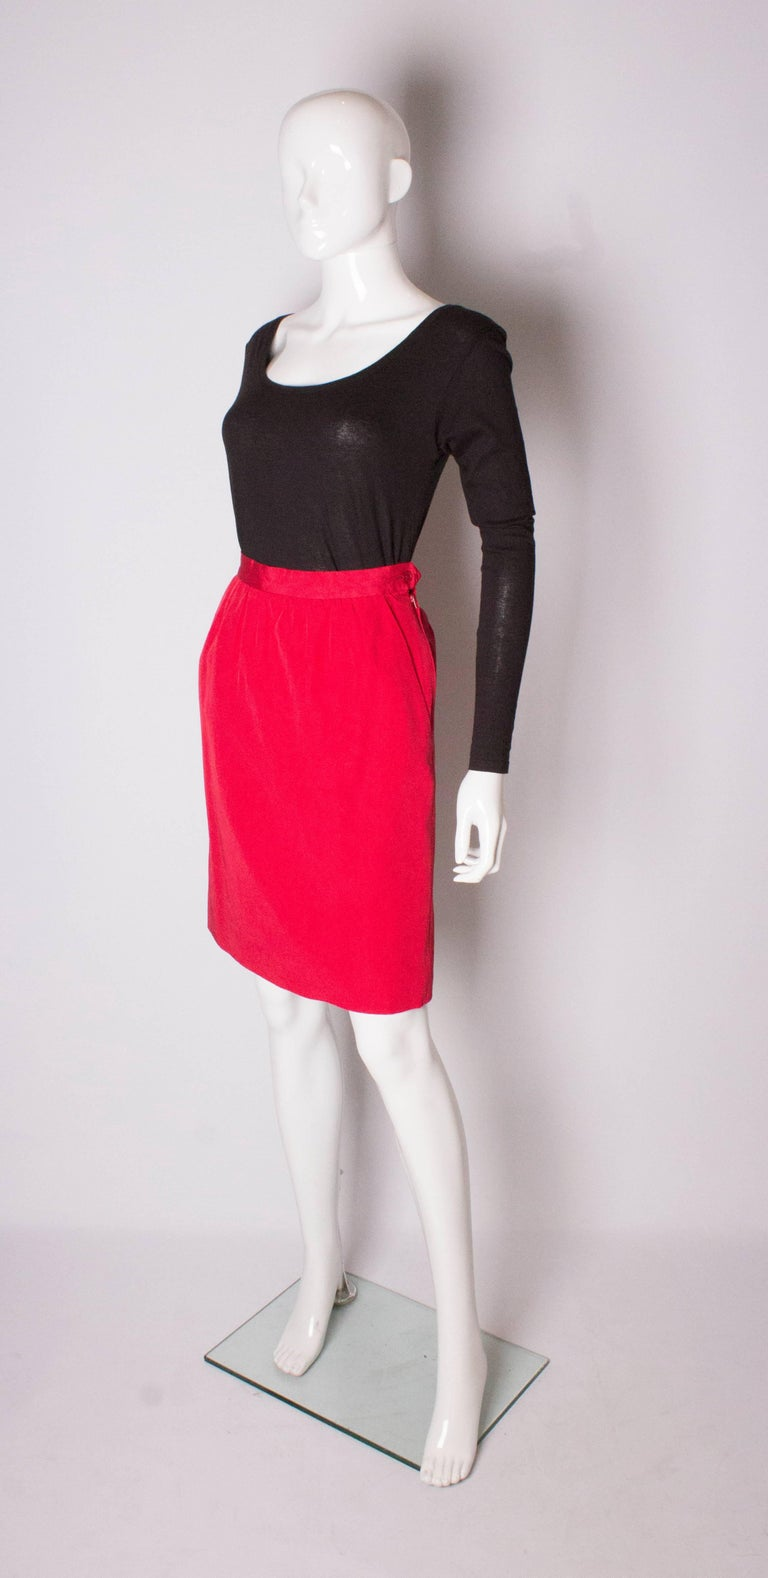 A chic vintage skirt by Yves Saint Laurent, Rive Gauche line. The skirt is a cotton and viscose mix ( 53% cotton, 47% viscose). It has sloping pockets on each side , gathering at the waist and a zip on the left hand side.